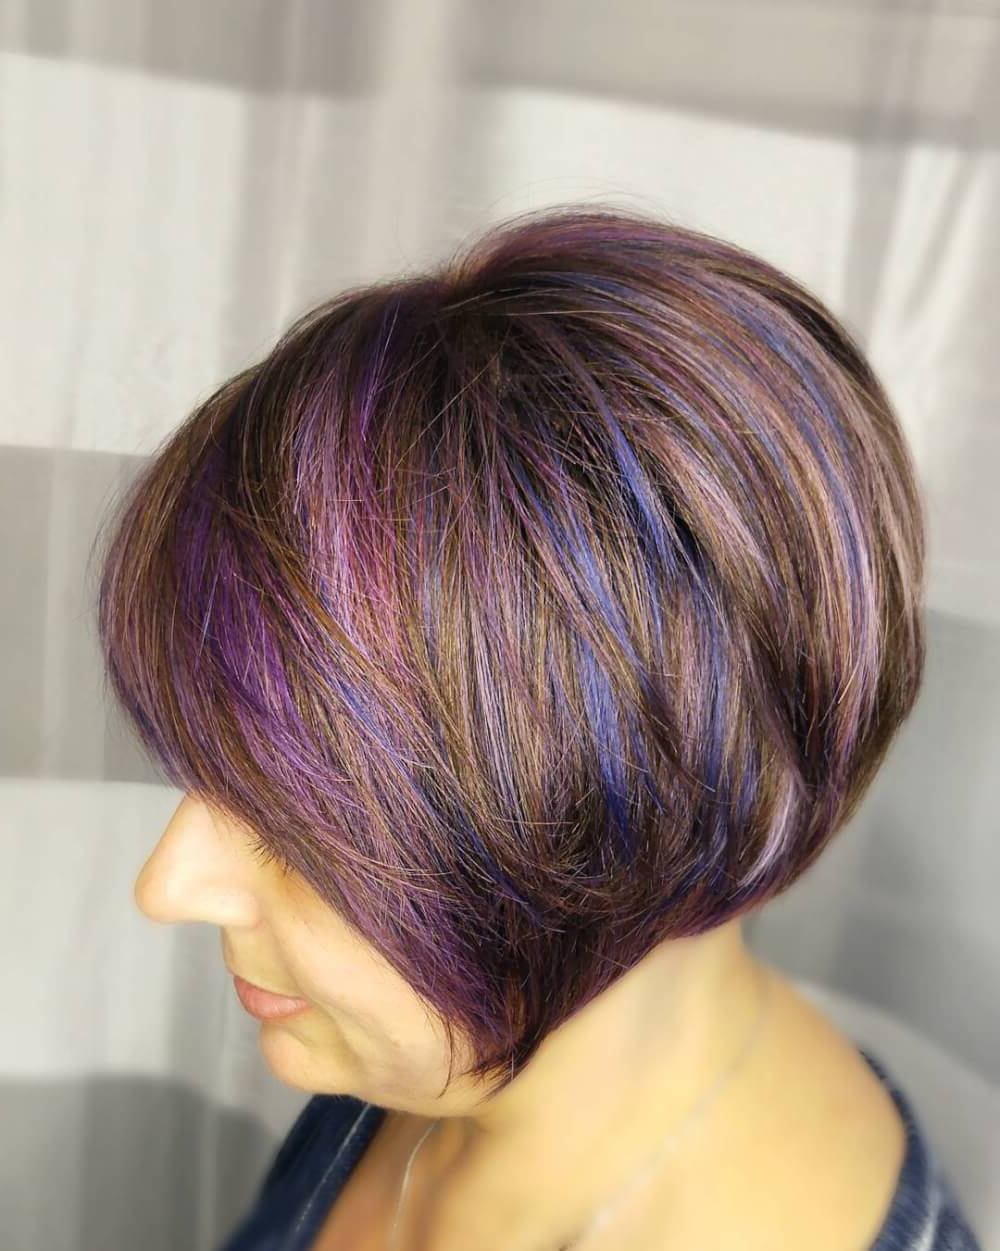 39 Youthful Short Hairstyles For Women Over 50 (with Fine & Thick Hair) Intended For Lavender Hairstyles For Women Over (View 4 of 20)